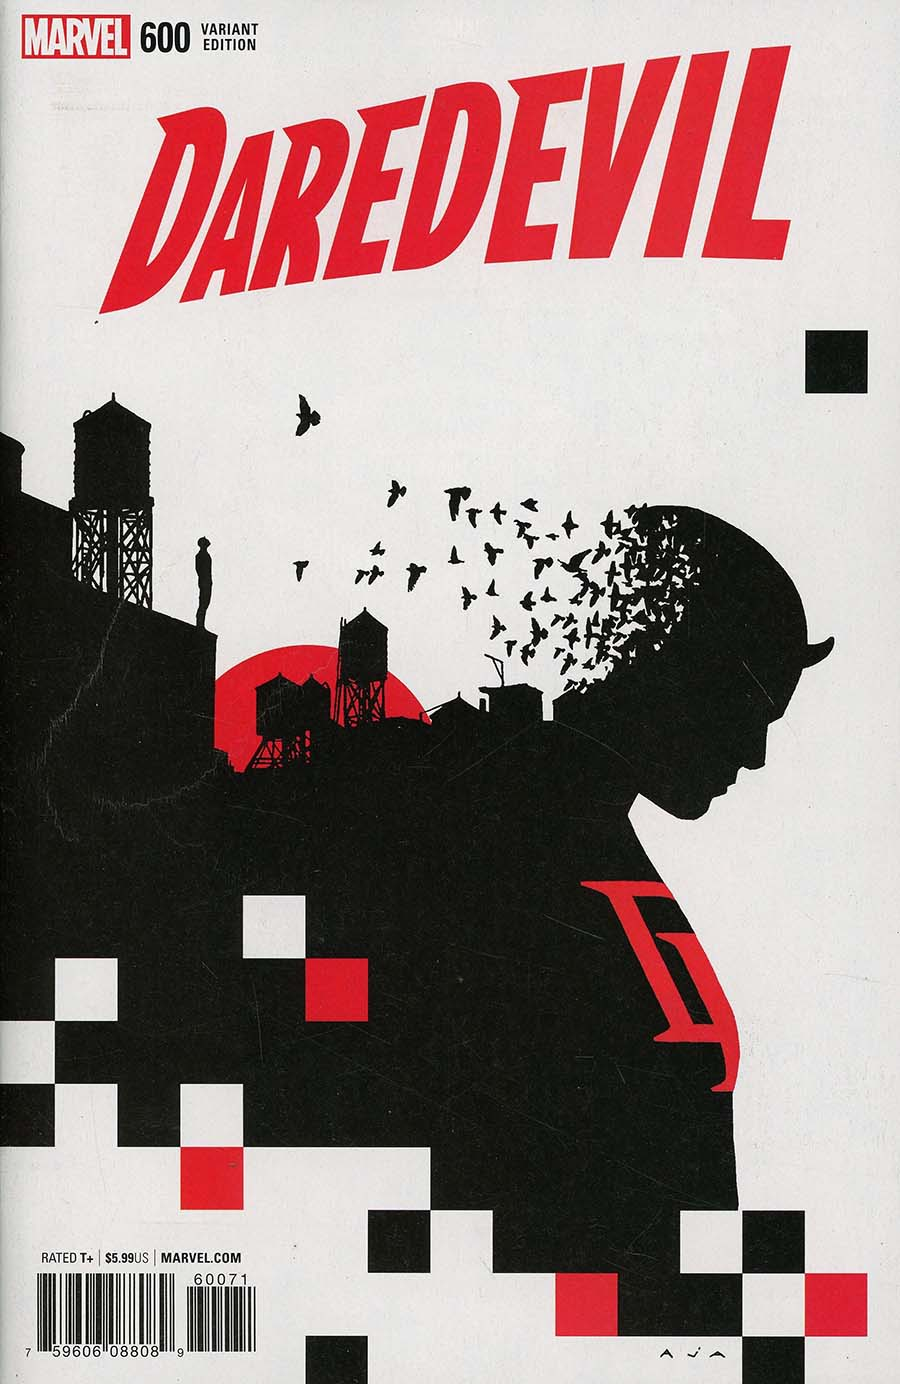 Cover by David Aja.